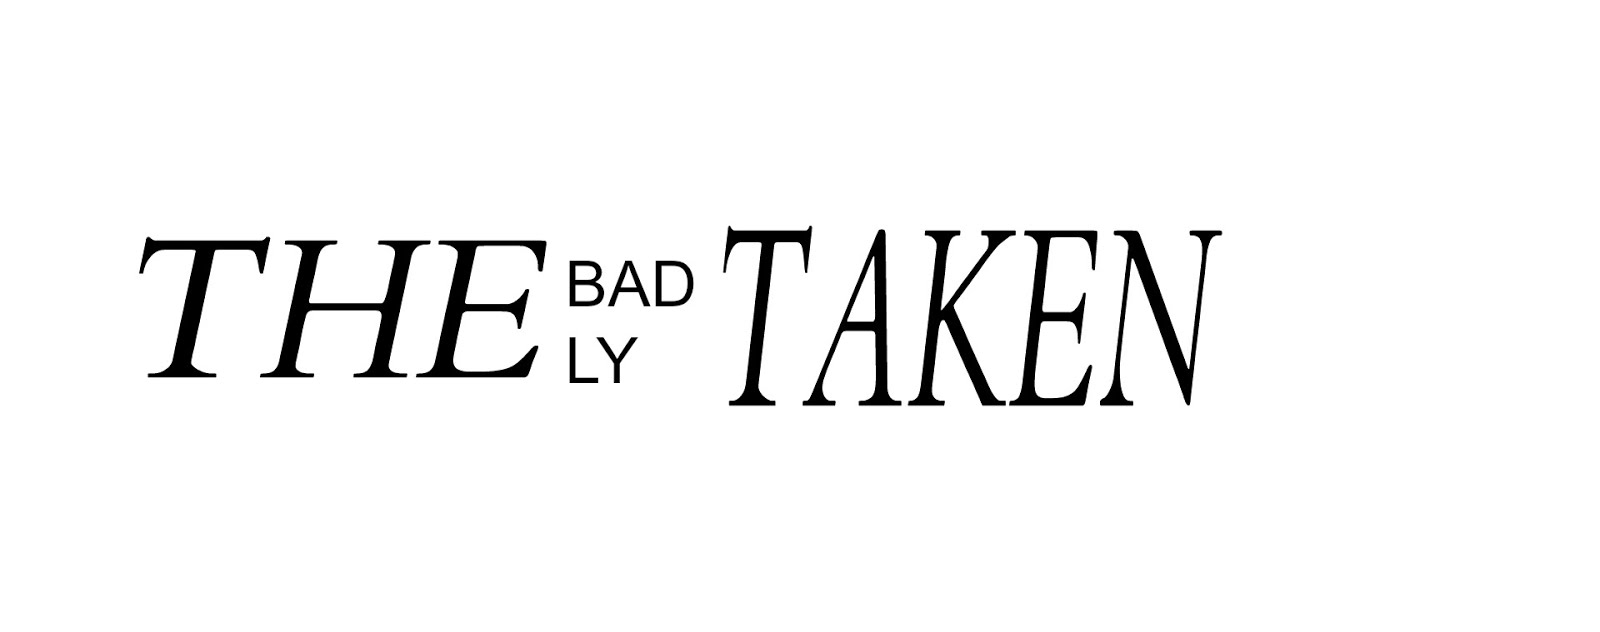 the badly taken